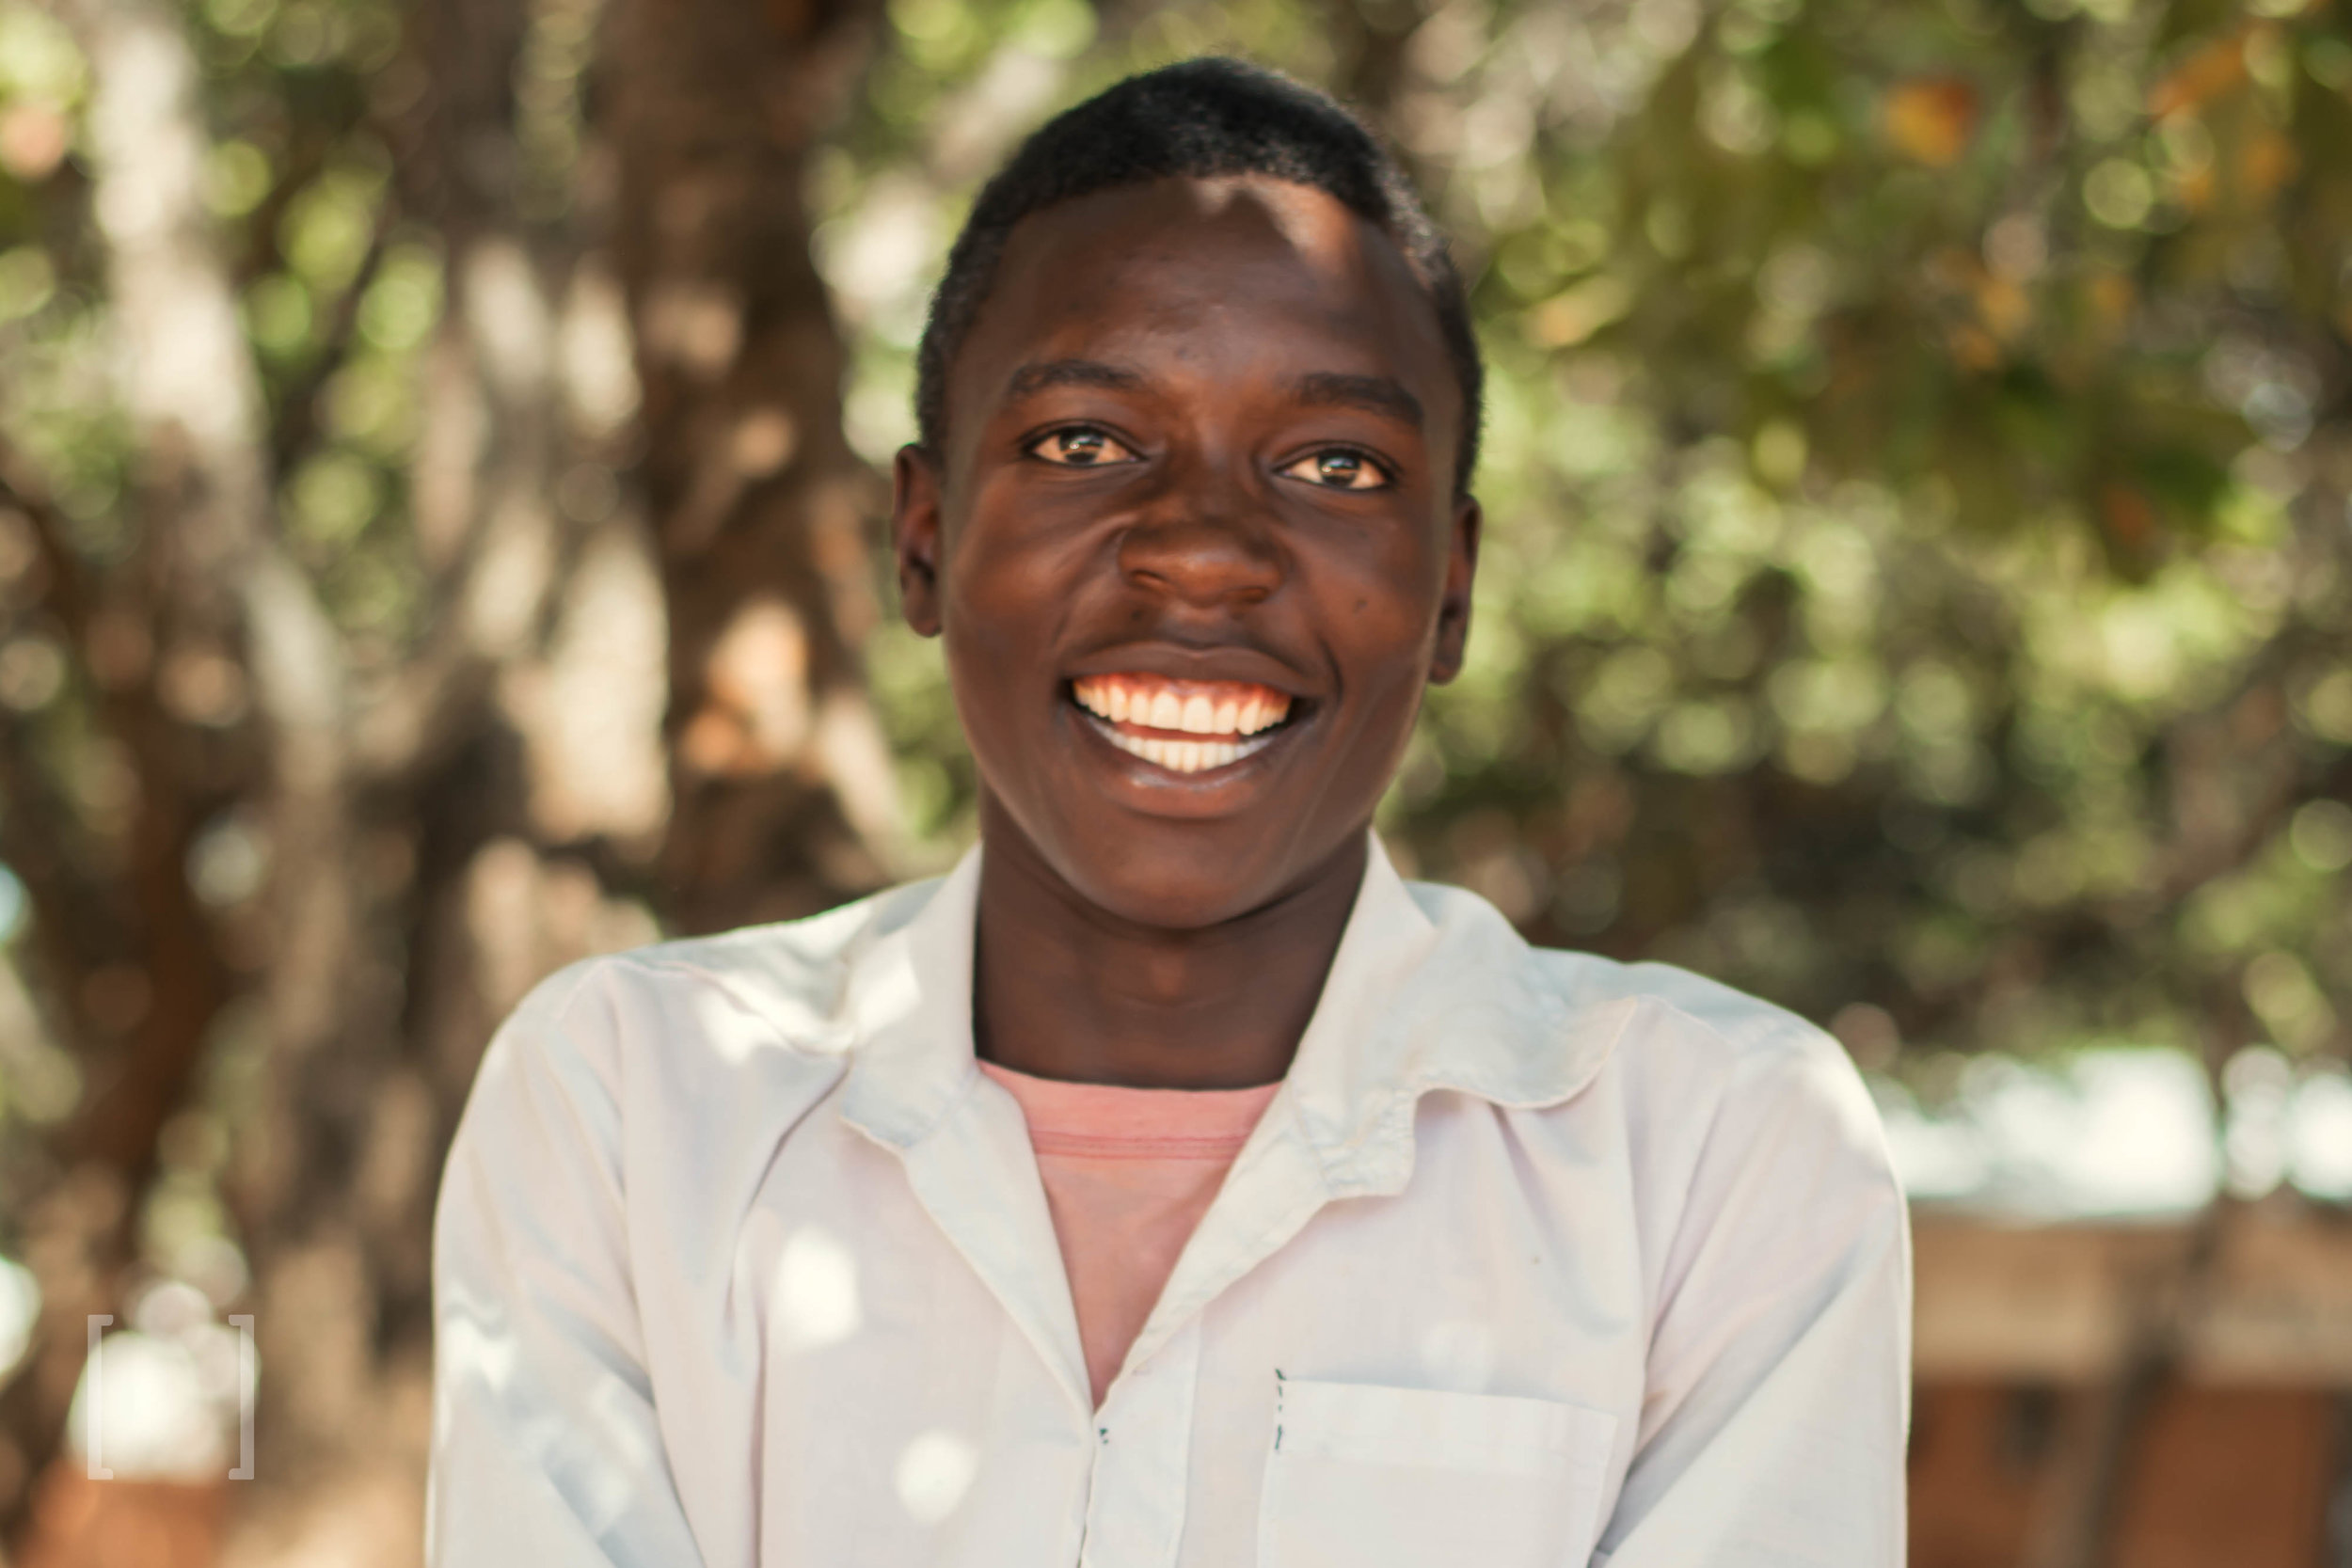 Mphatso - Mphatso has 3 siblings. He would like to become a doctor so that he can help care for his chronically ill mother. He is doing well in class and enjoys staying at Home of Hope. Help him on his way!